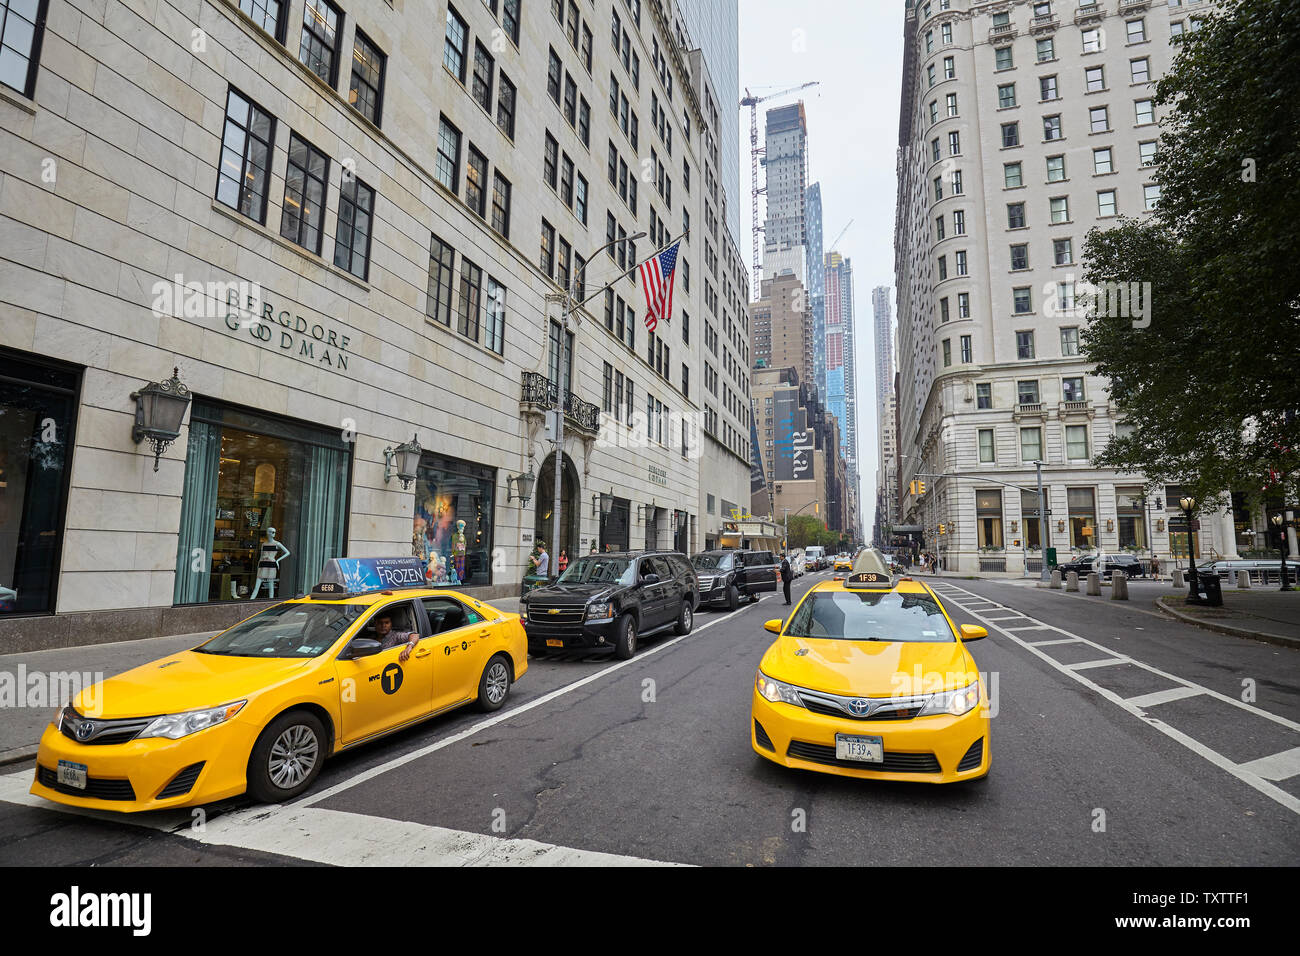 New York, USA - July 04, 2018: New York medallion taxicab vehicles on a street of Manhattan. - Stock Image